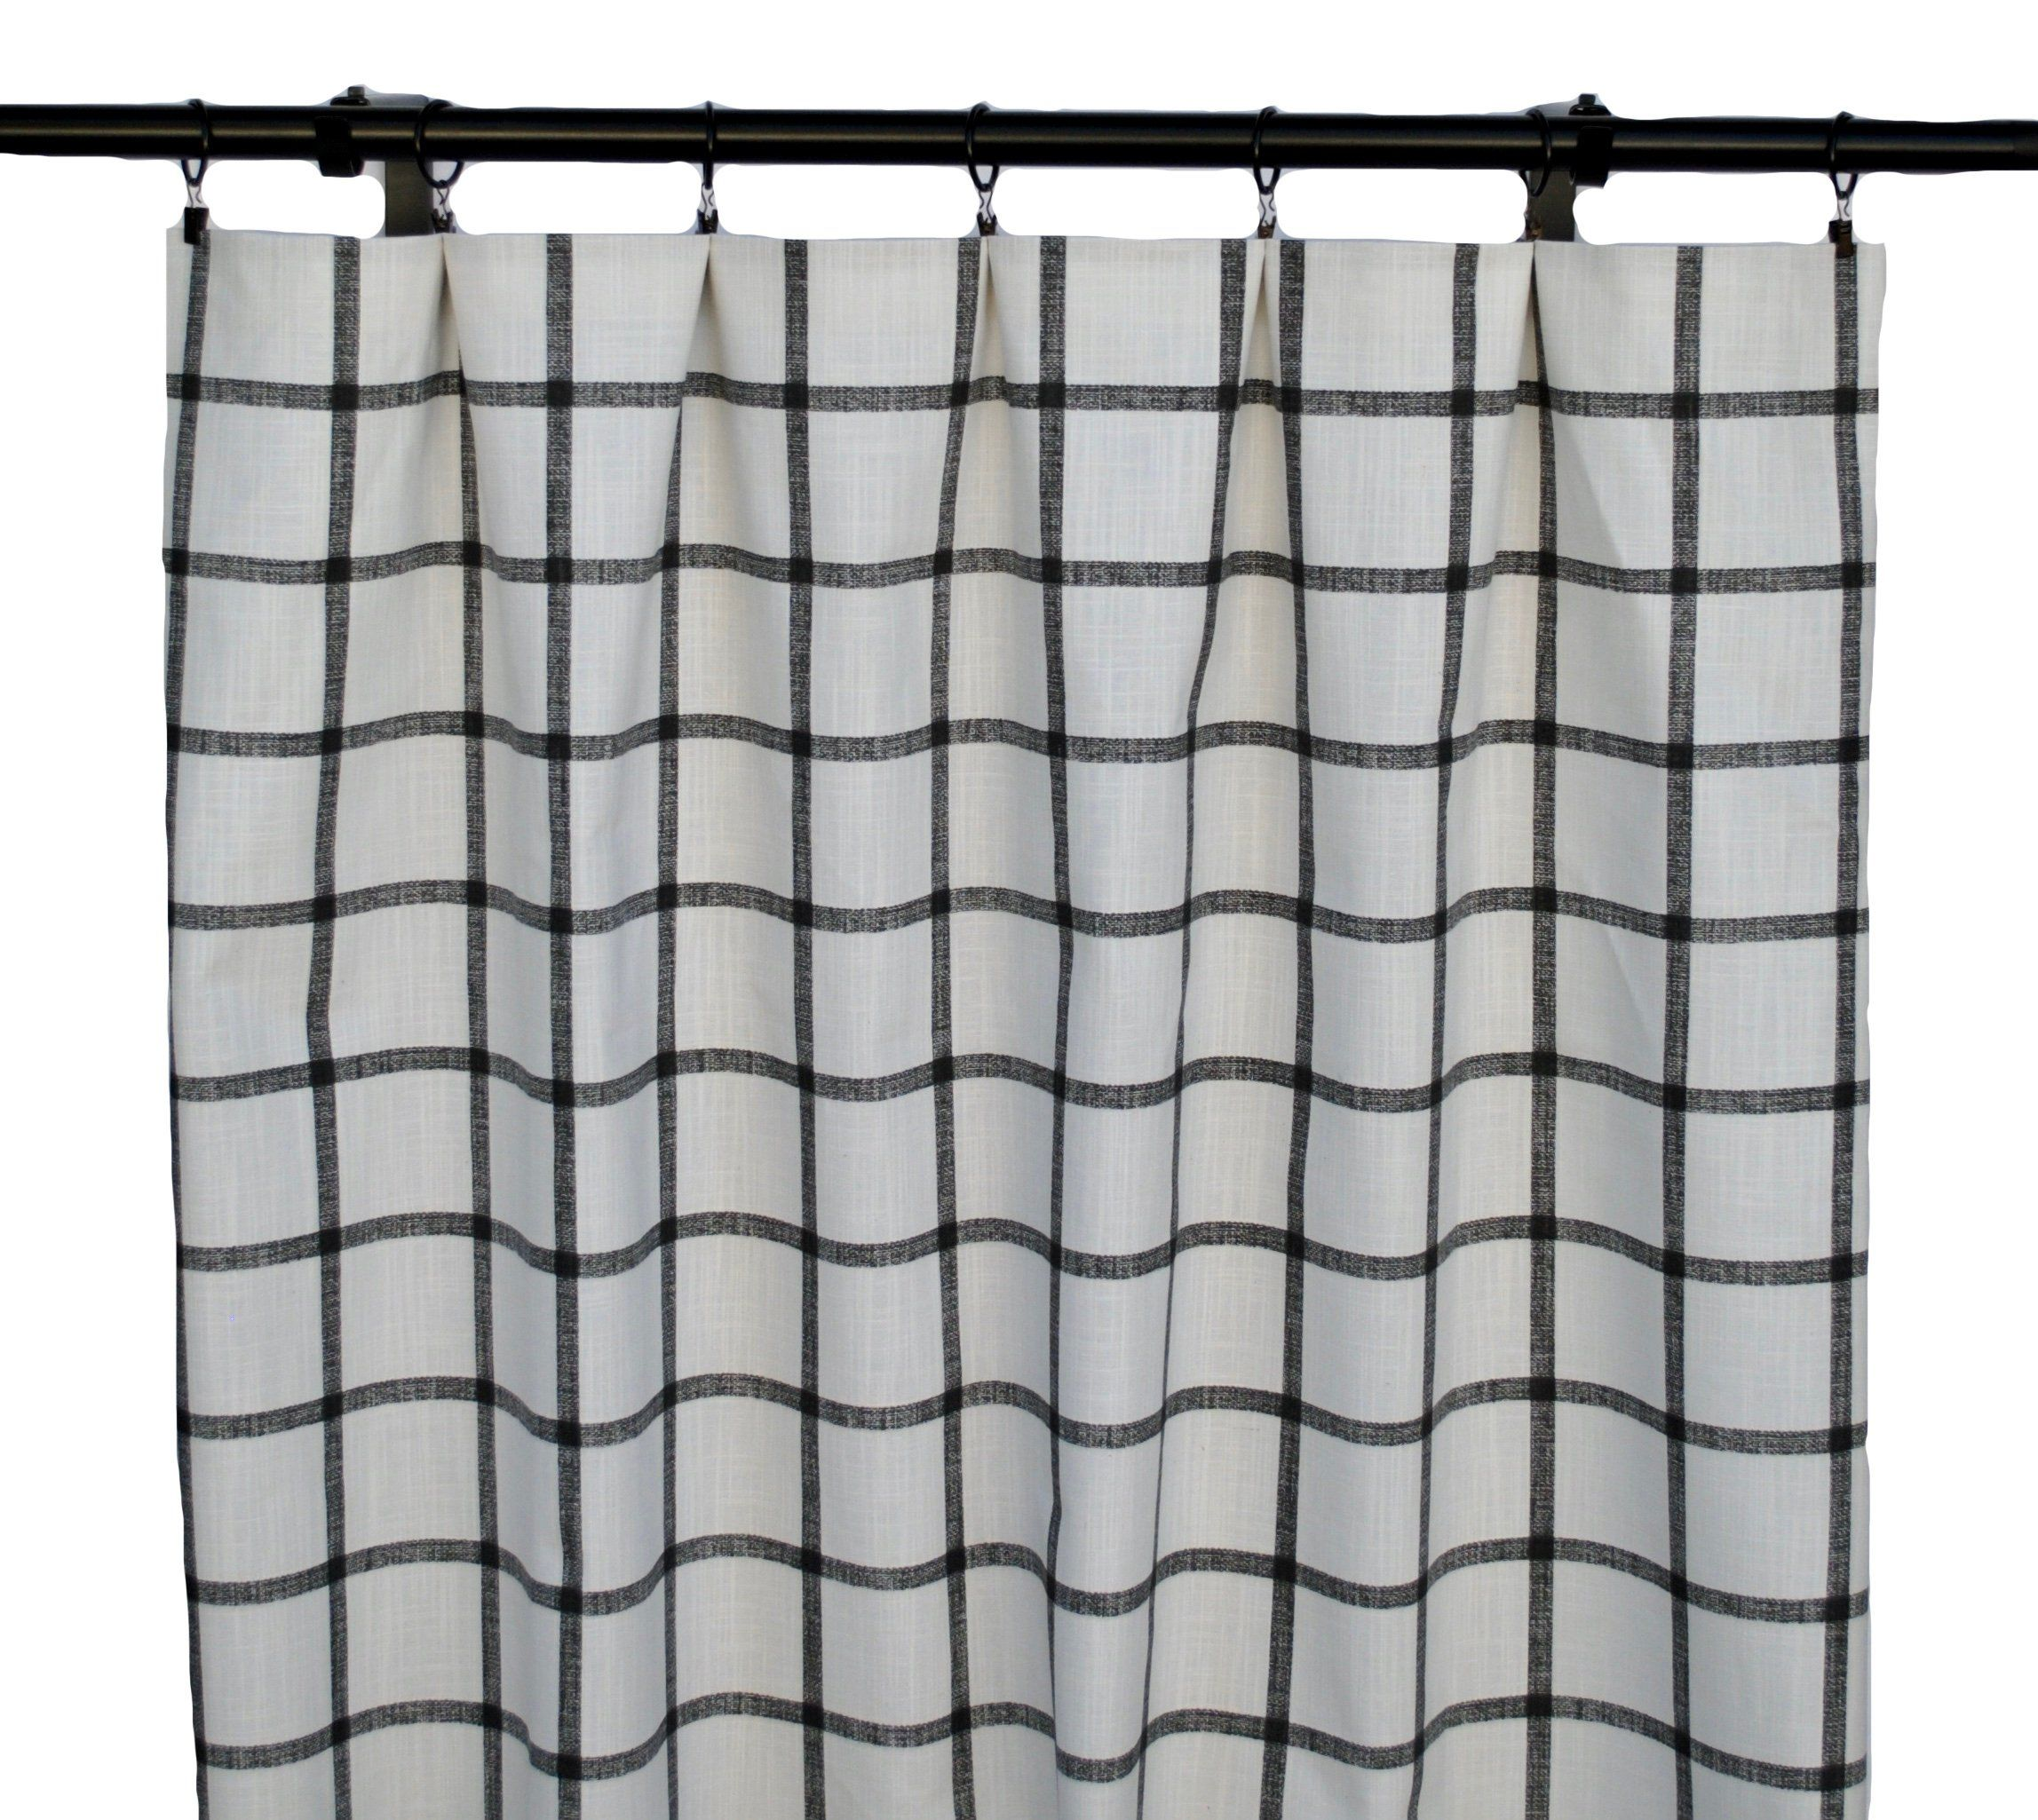 Black and white checkered Curtains, YCheckered Curtain, 2 Curtain Panels, Curtains, Home Decor, Black and white Curtain